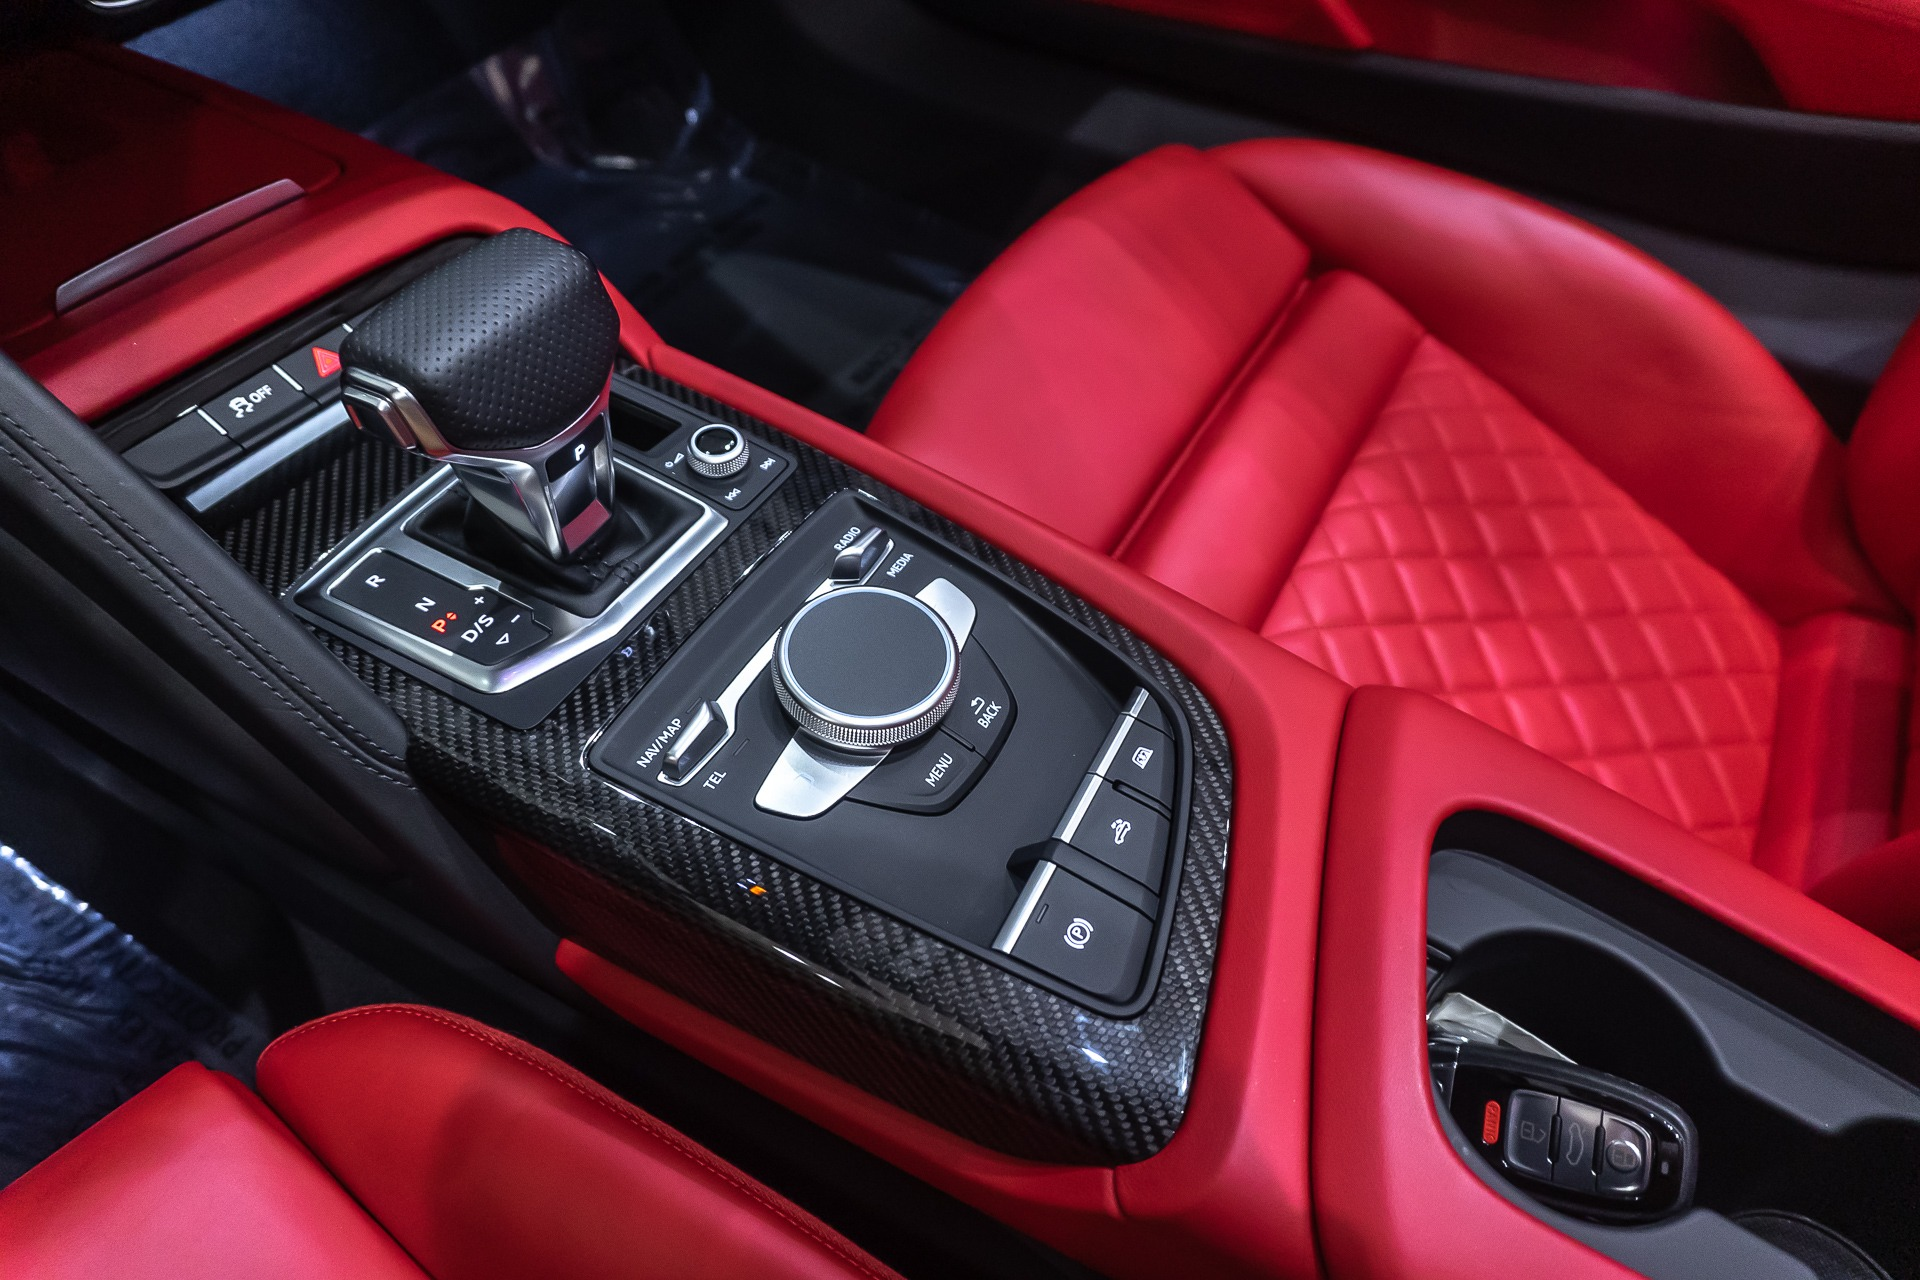 Used 2018 Audi R8 Spyder V10 Plus Convertible Msrp 220 390 25k In Upgrades For Sale Special Pricing Chicago Motor Cars Stock 17049